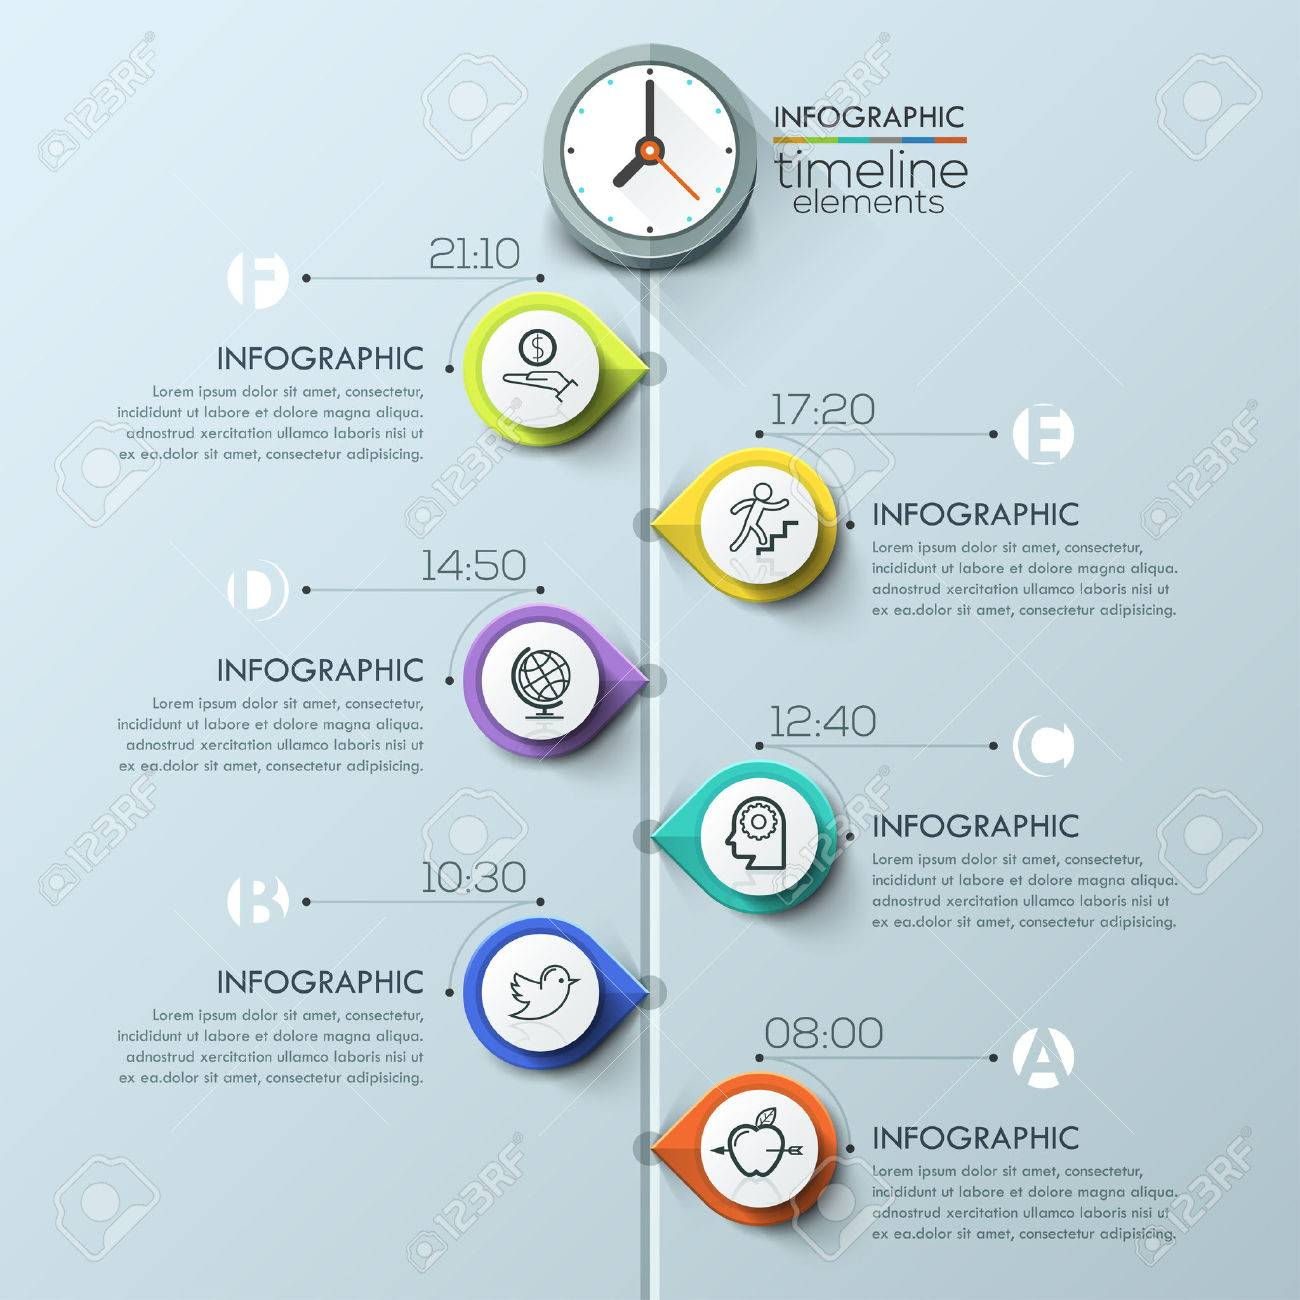 business timeline infographic template can be used for workflow